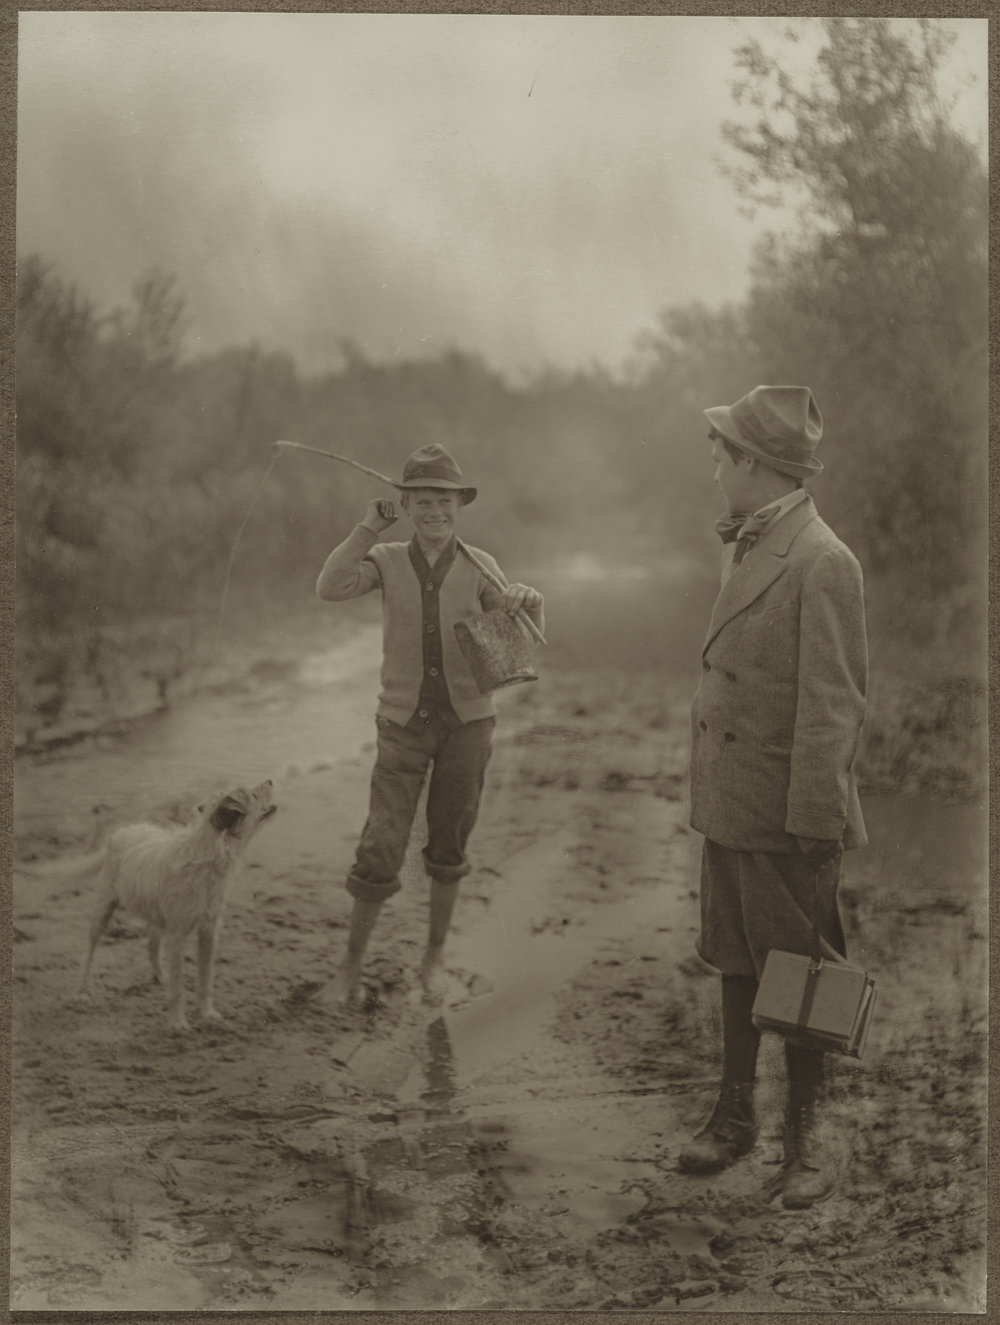 Let's Play Hookie, The Lane Collection, Photograph © Museum of Fine Arts, Boston